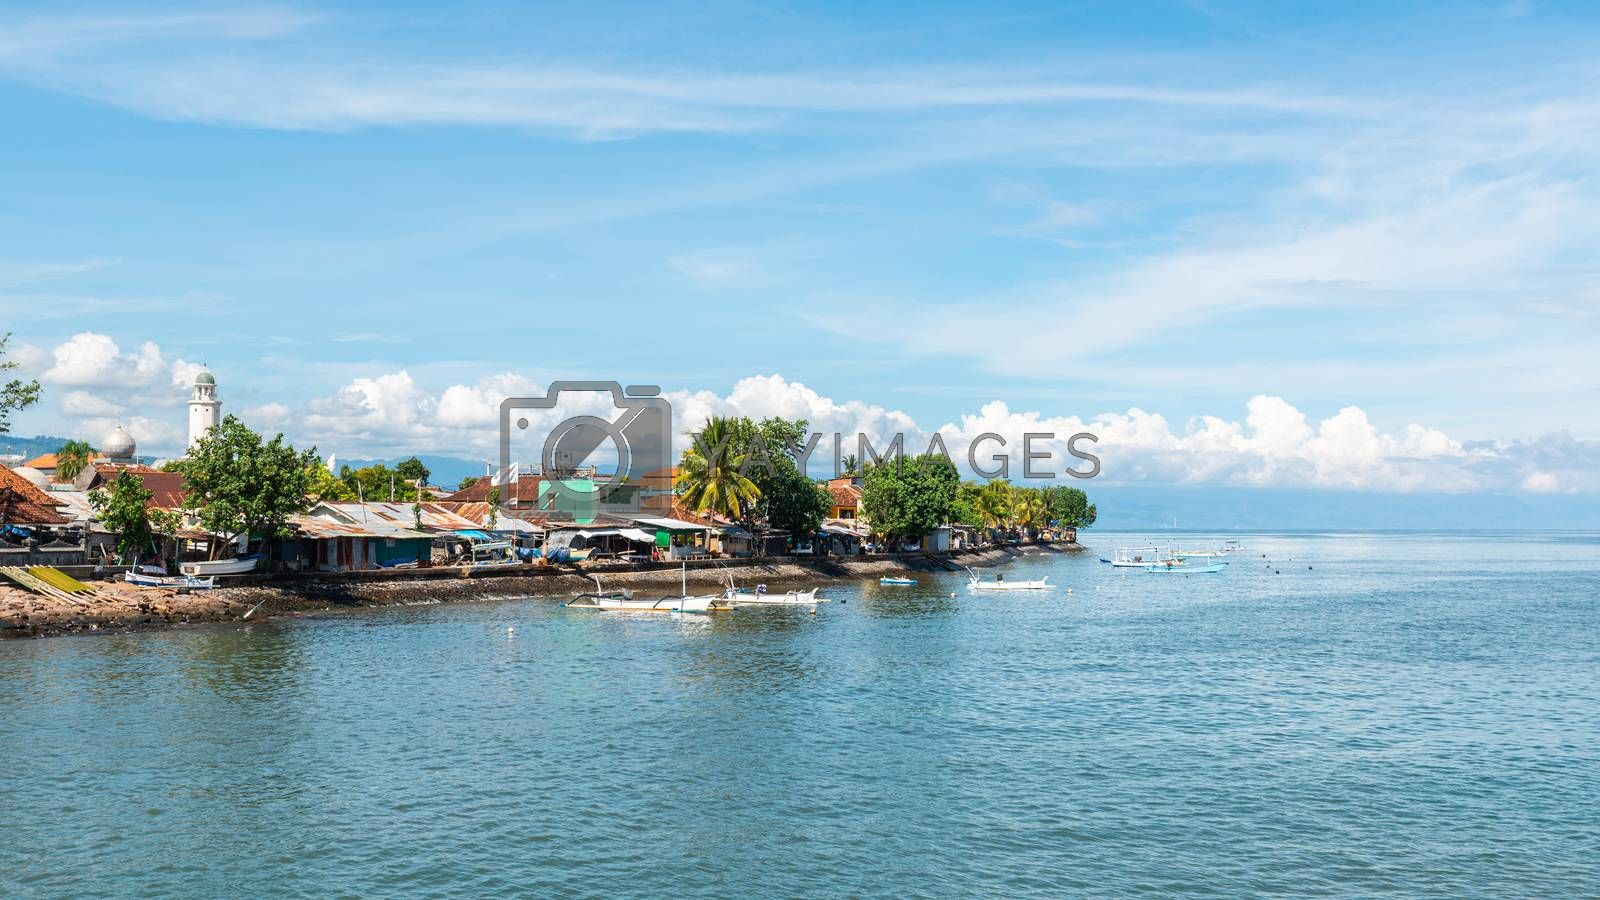 Singaraja in North Bali, Indonesia. Mosque on the left and traditional fishing boats called jukung.